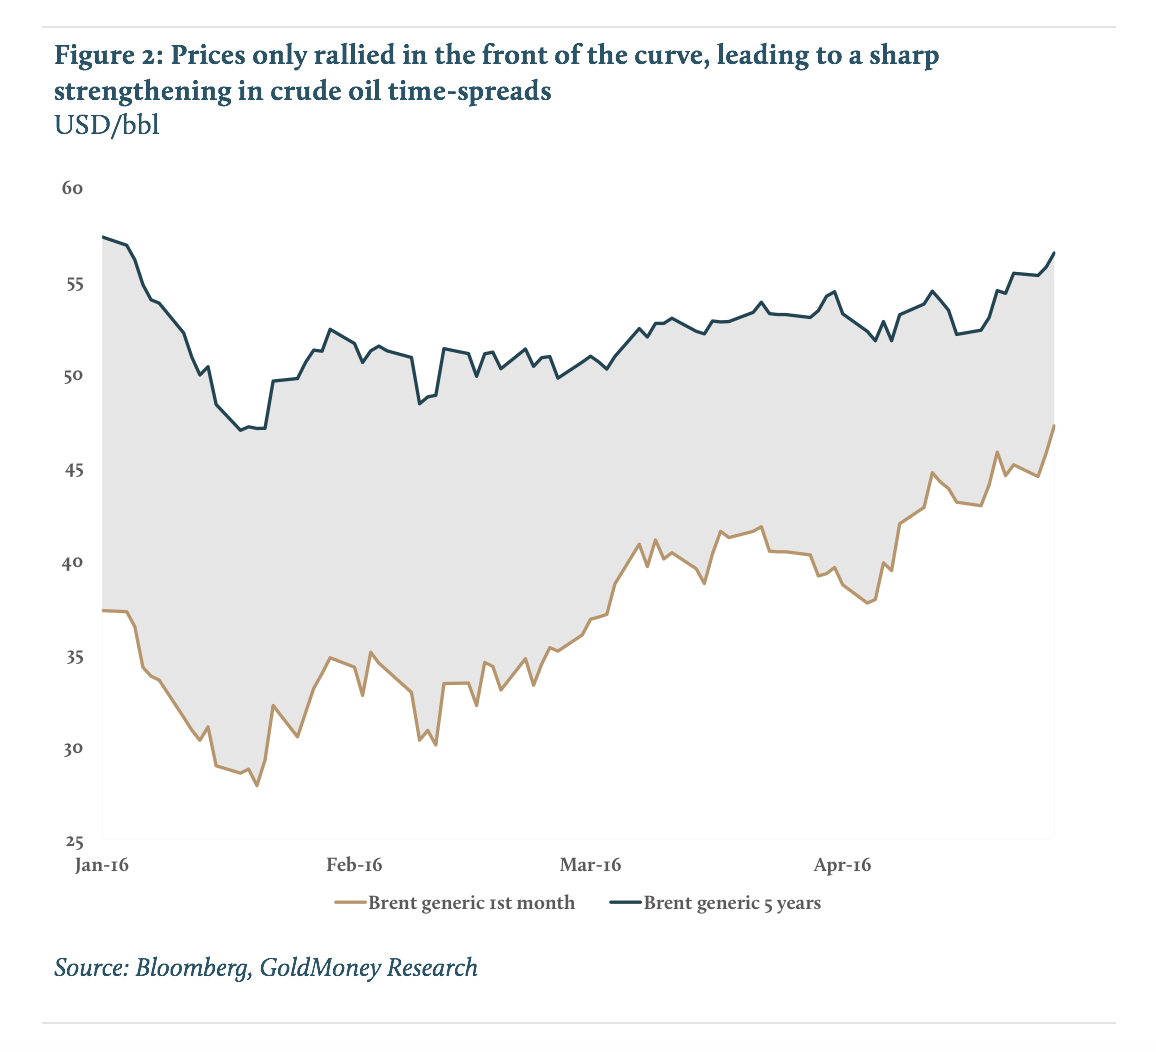 Prices only rallied in the front of the curve